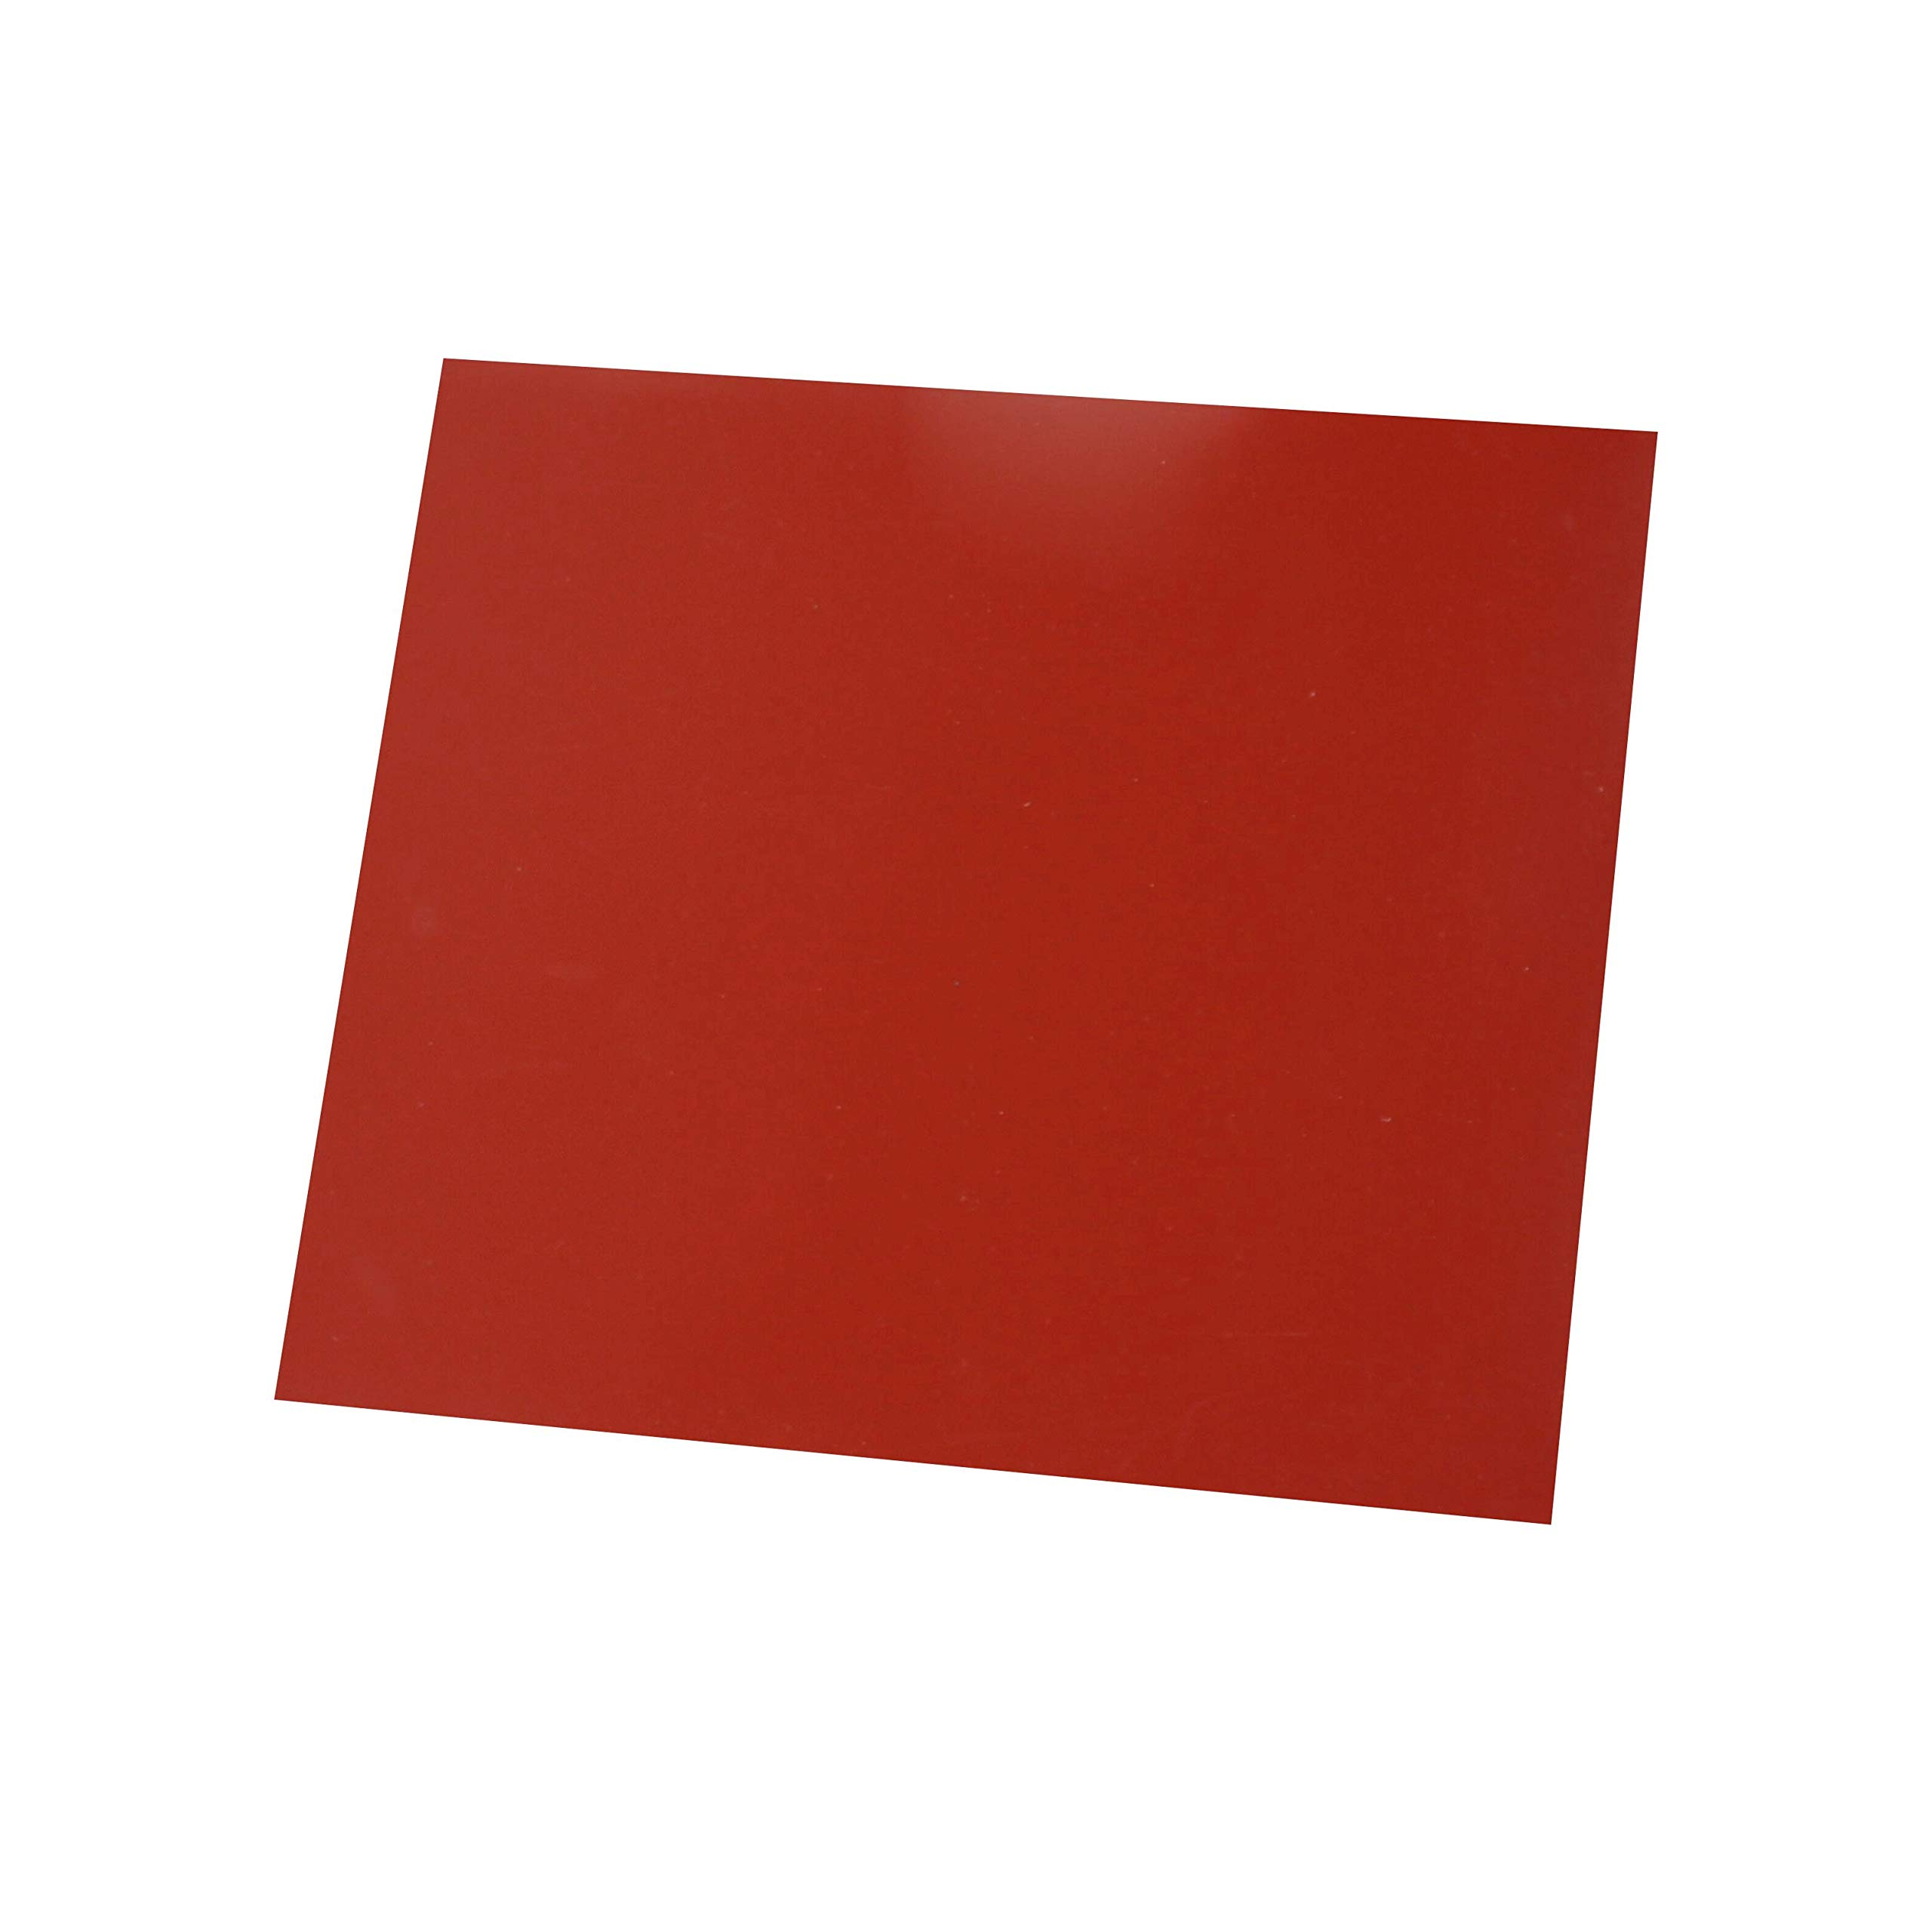 Flexible Heat Resistant Silicone Rubber Sheeting, High Temp,Smooth Finish, Red 1/8 by 12 by 12 inch by Laimeisi